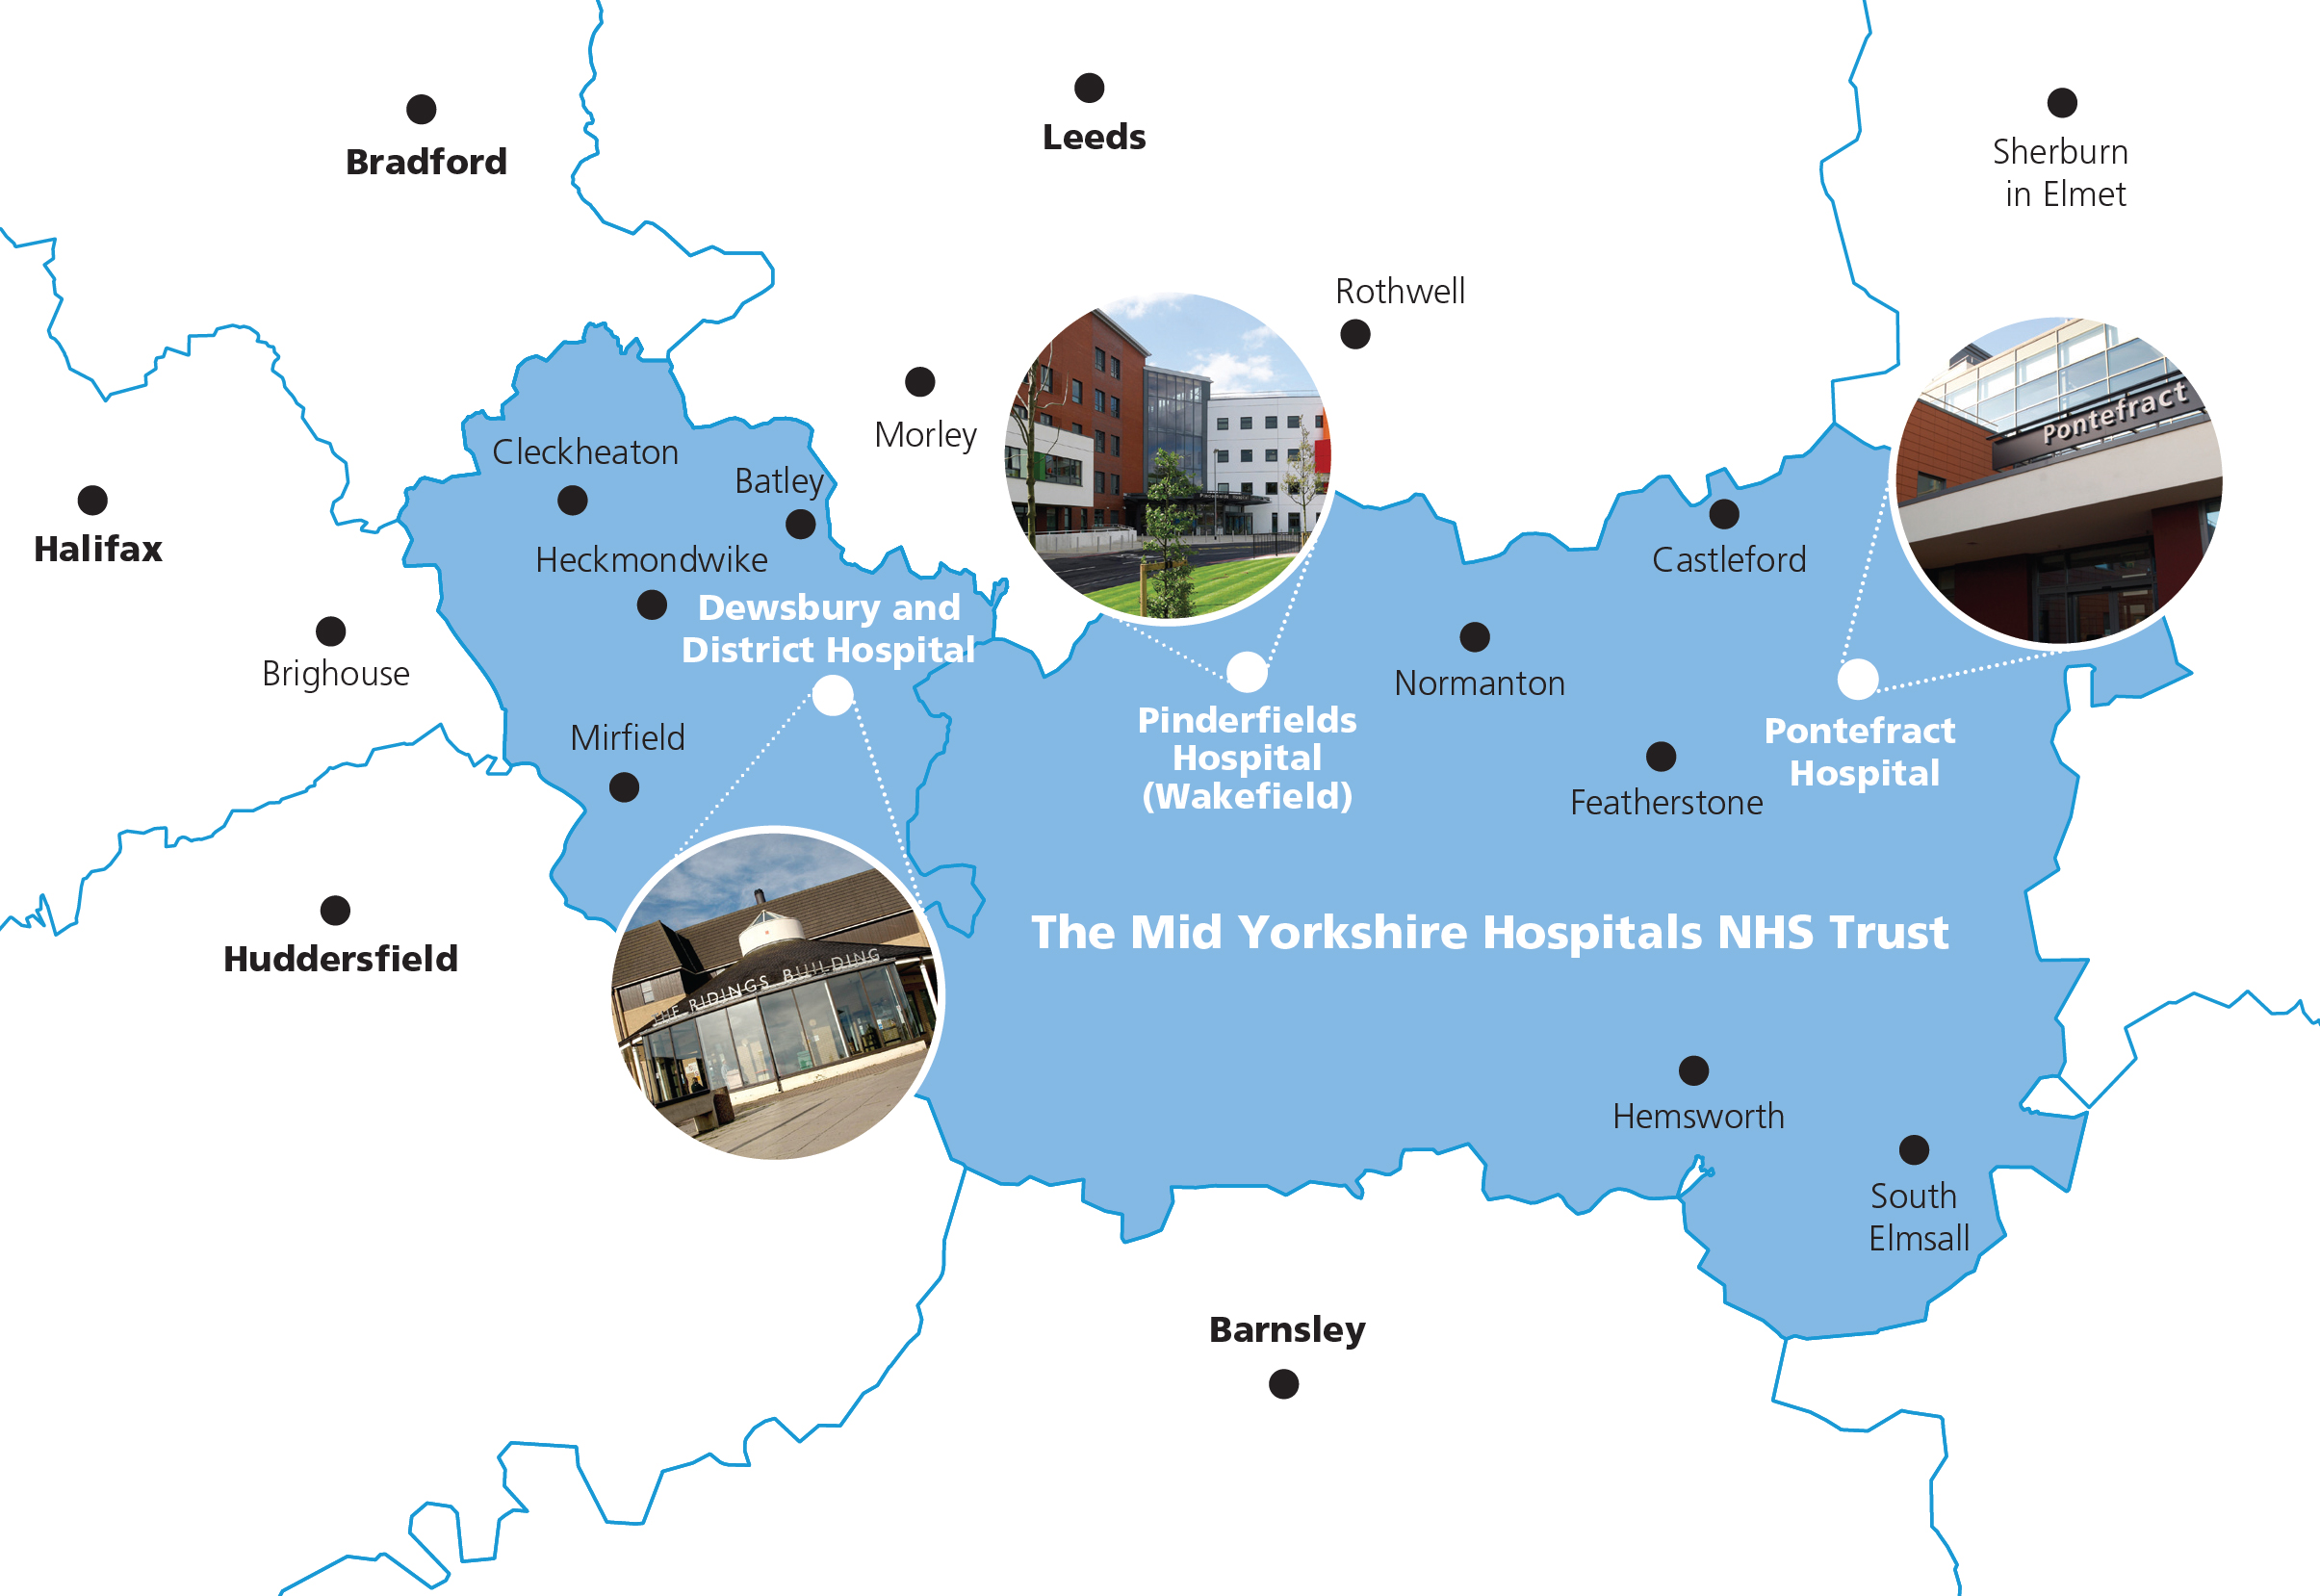 Map of Mid Yorkshire NHS Trust placement hospitals